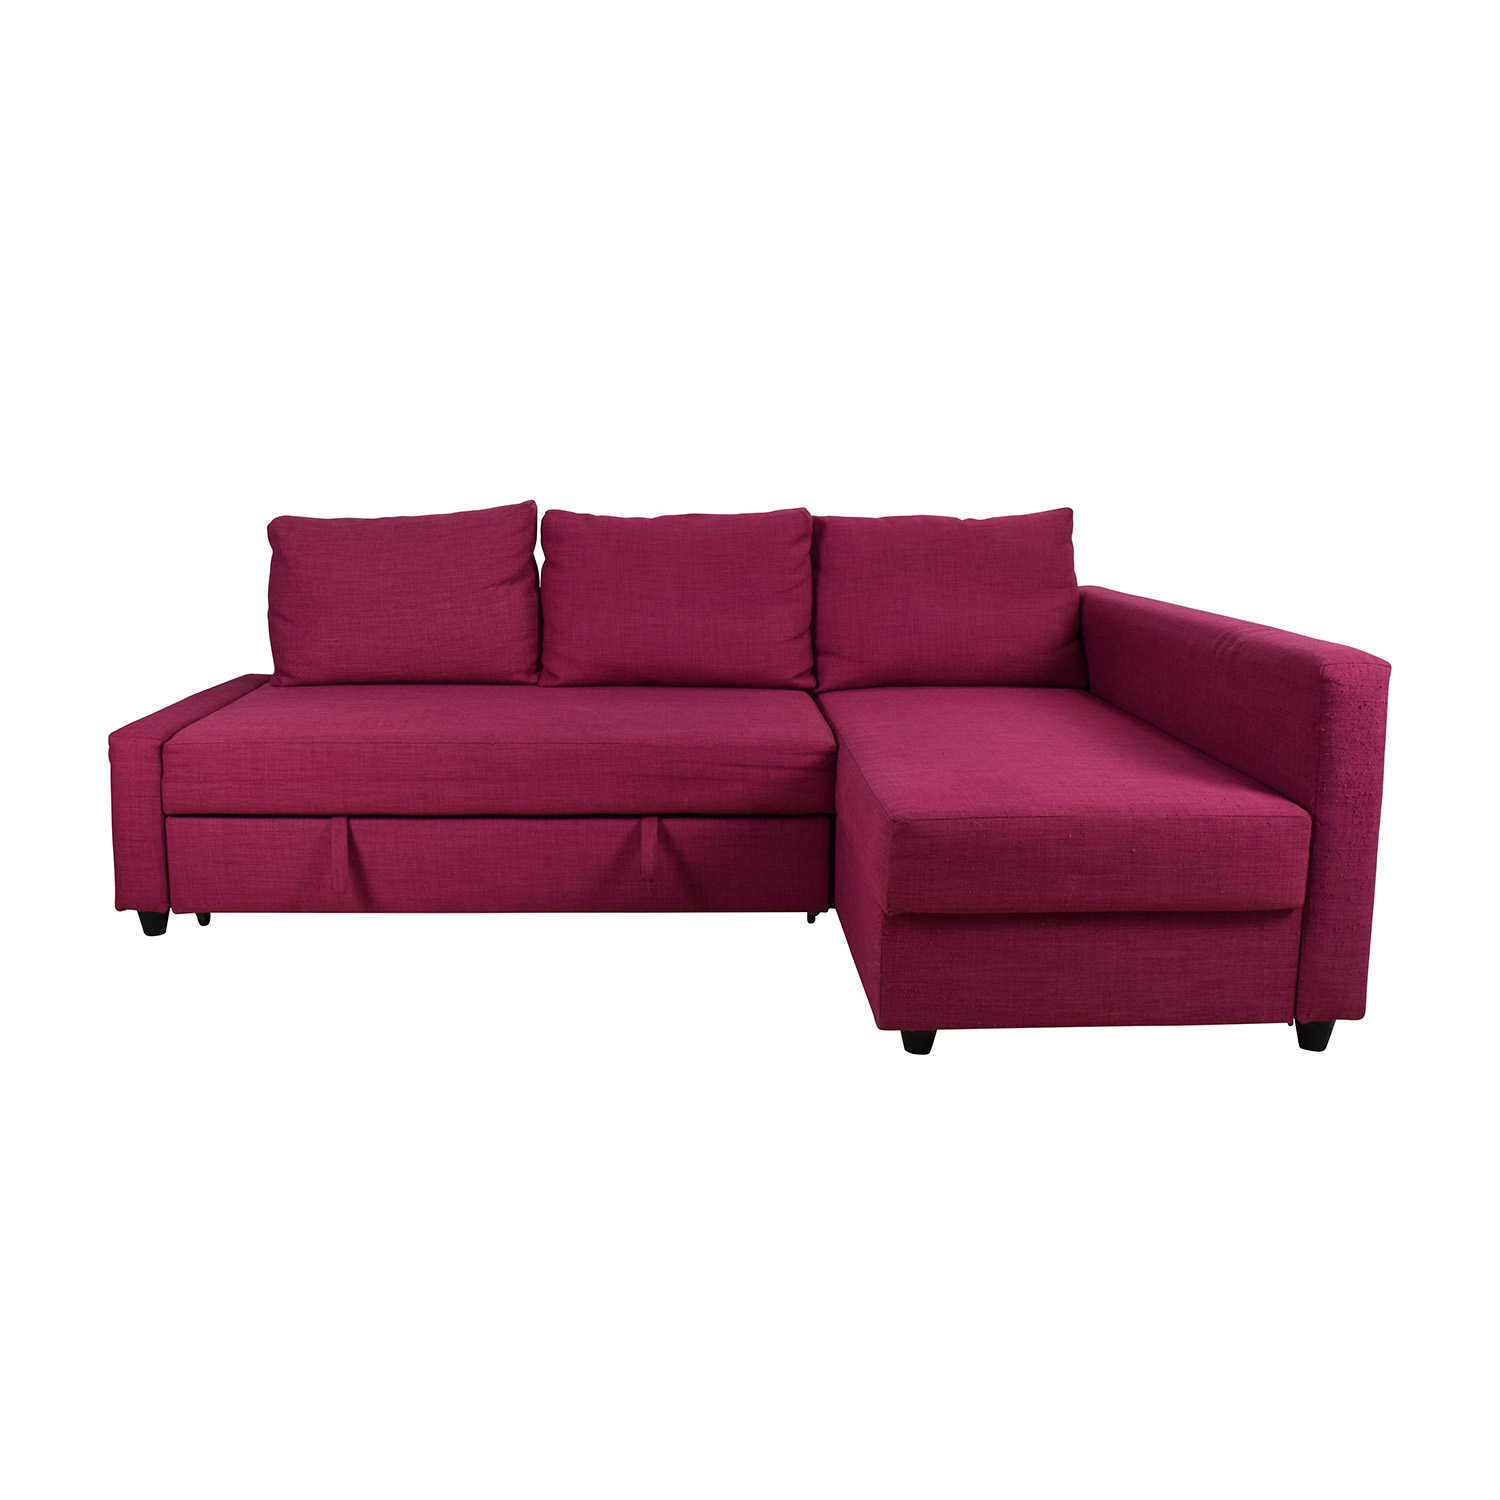 IKEA IKEA FRIHETEN Pink Sleeper Sofa on sale